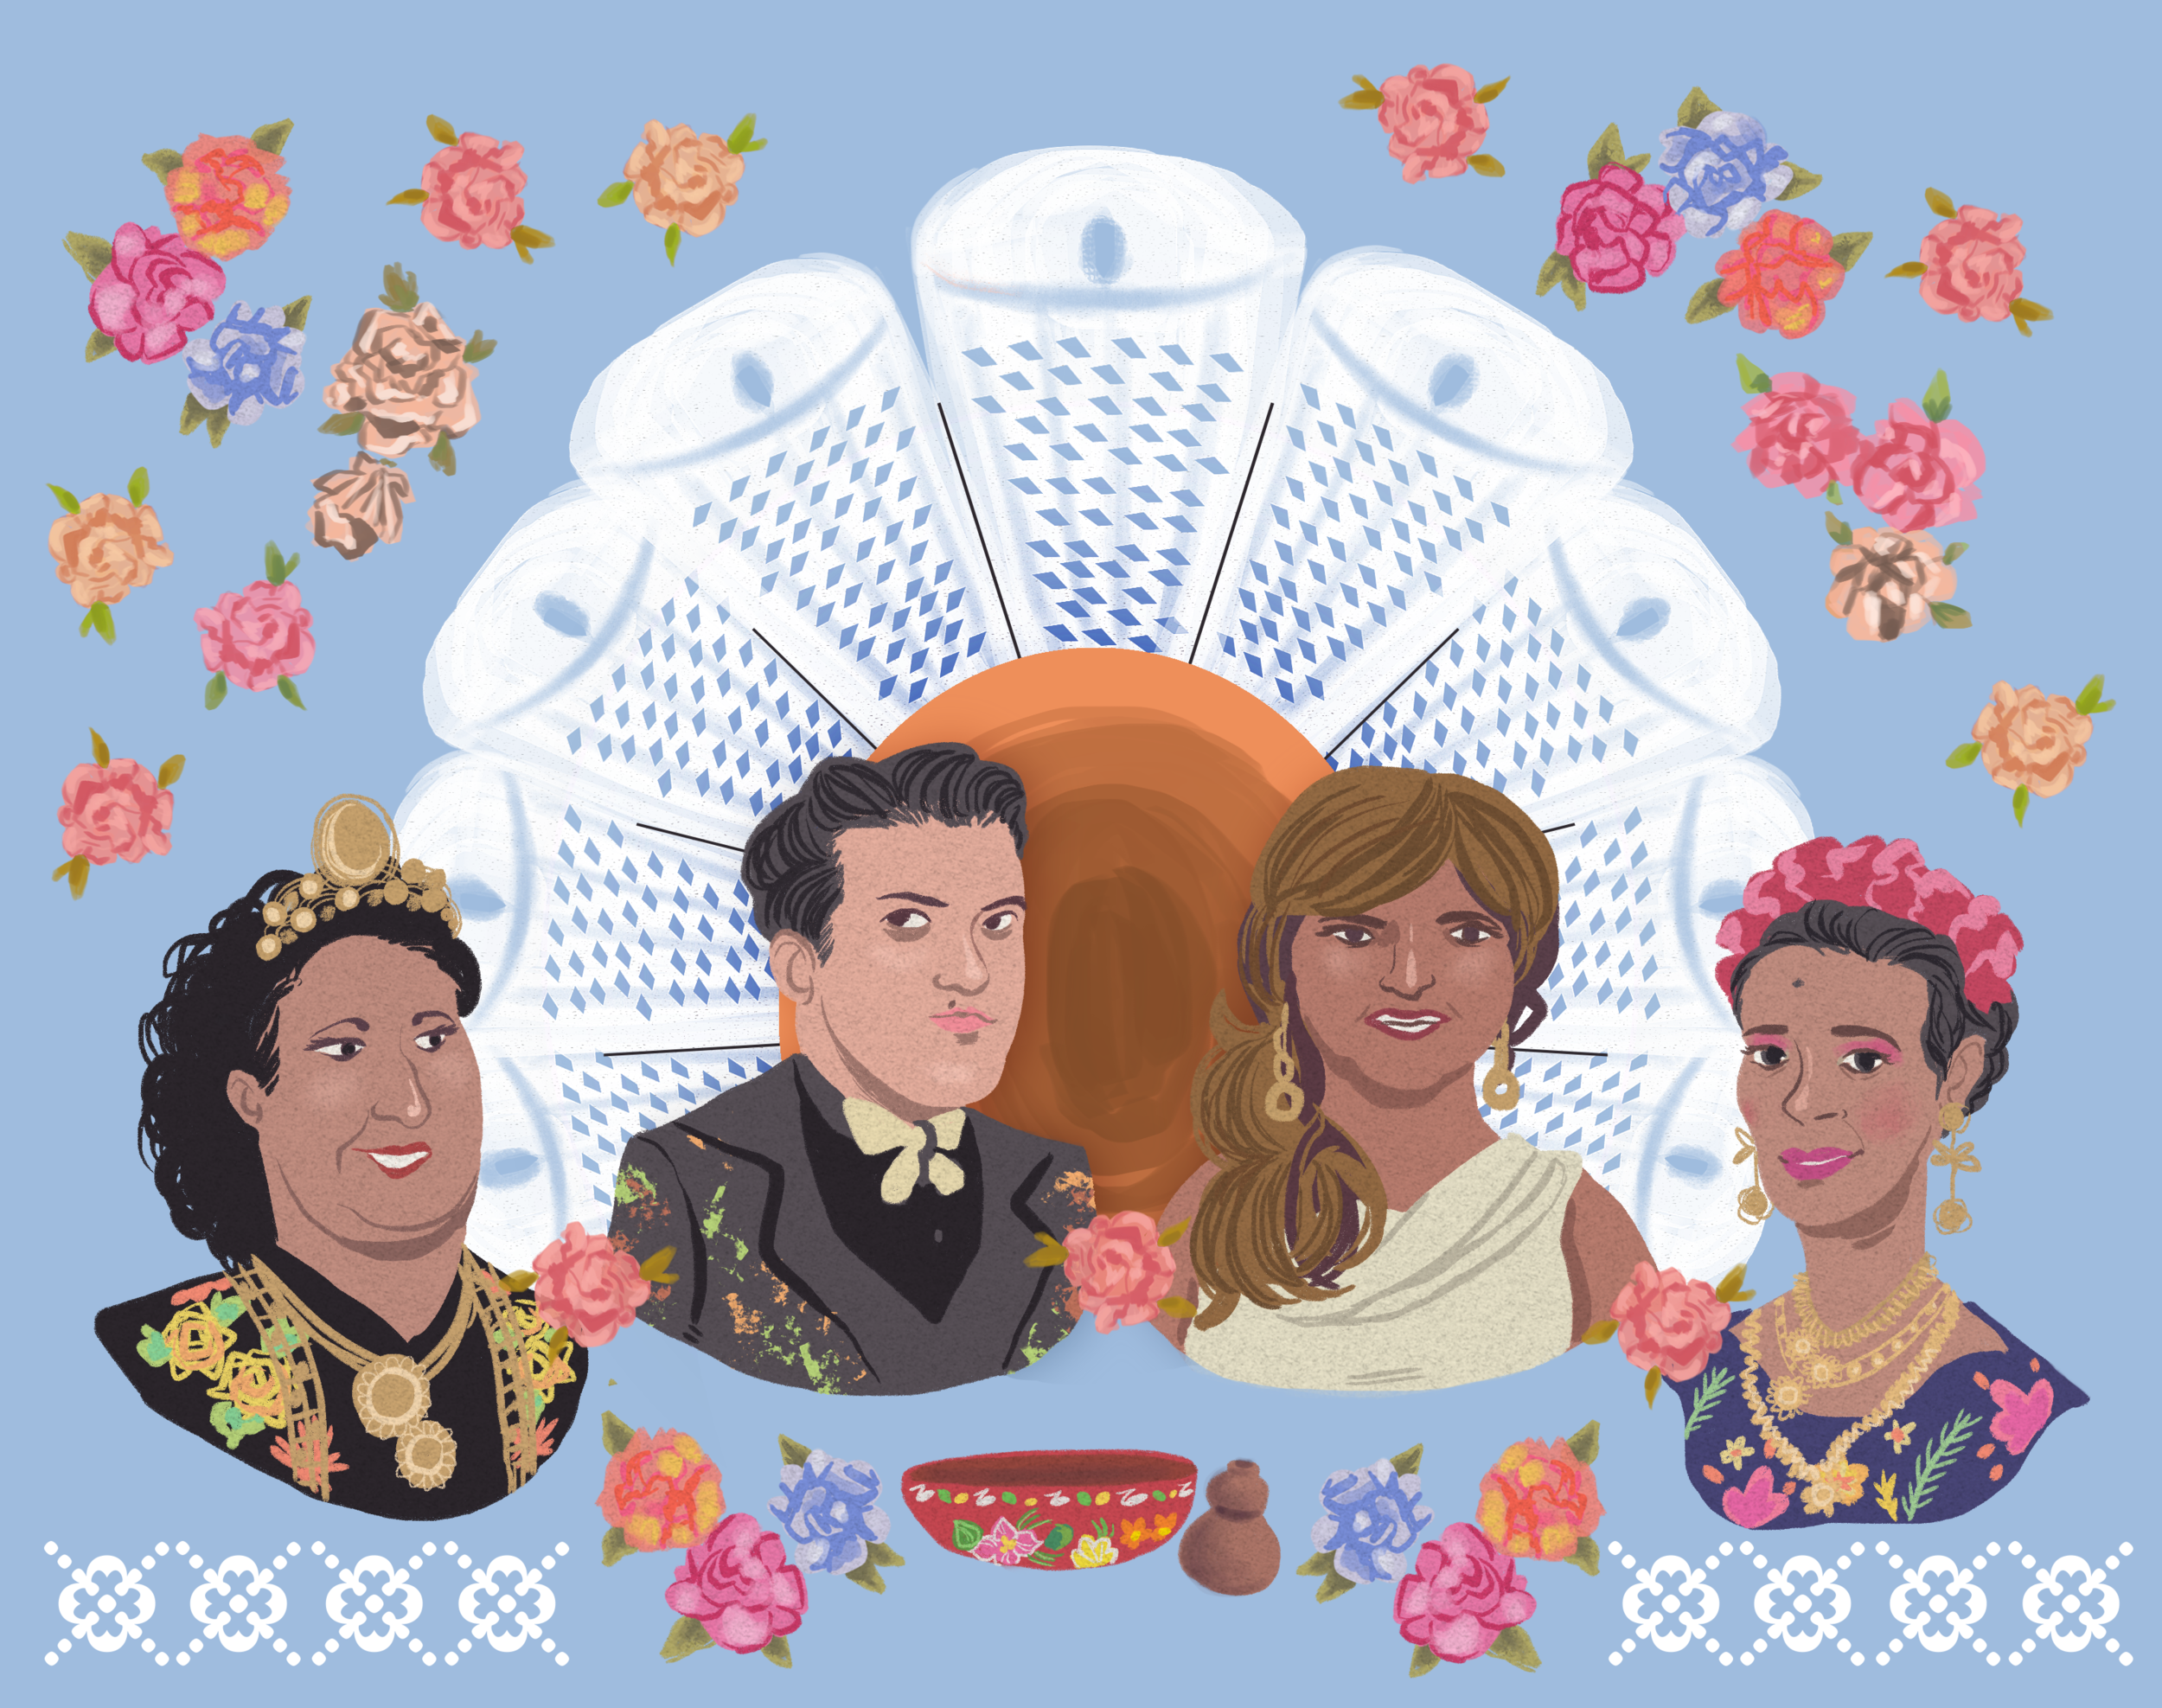 Left -Right: Michel Del Toro, Nestor Pablo Villegas Esteva,Henry Gerónimo López, Naomy Mendez Romero and Jorge Tonche as represented by the ceremonial headpiece, bowl and gourd. 'Soy, Muxe' artwork created by Mexican comic artist Berenice González Méndez aka Bere Weilschmidt,fund her latest queer themed comics on  Patreon .